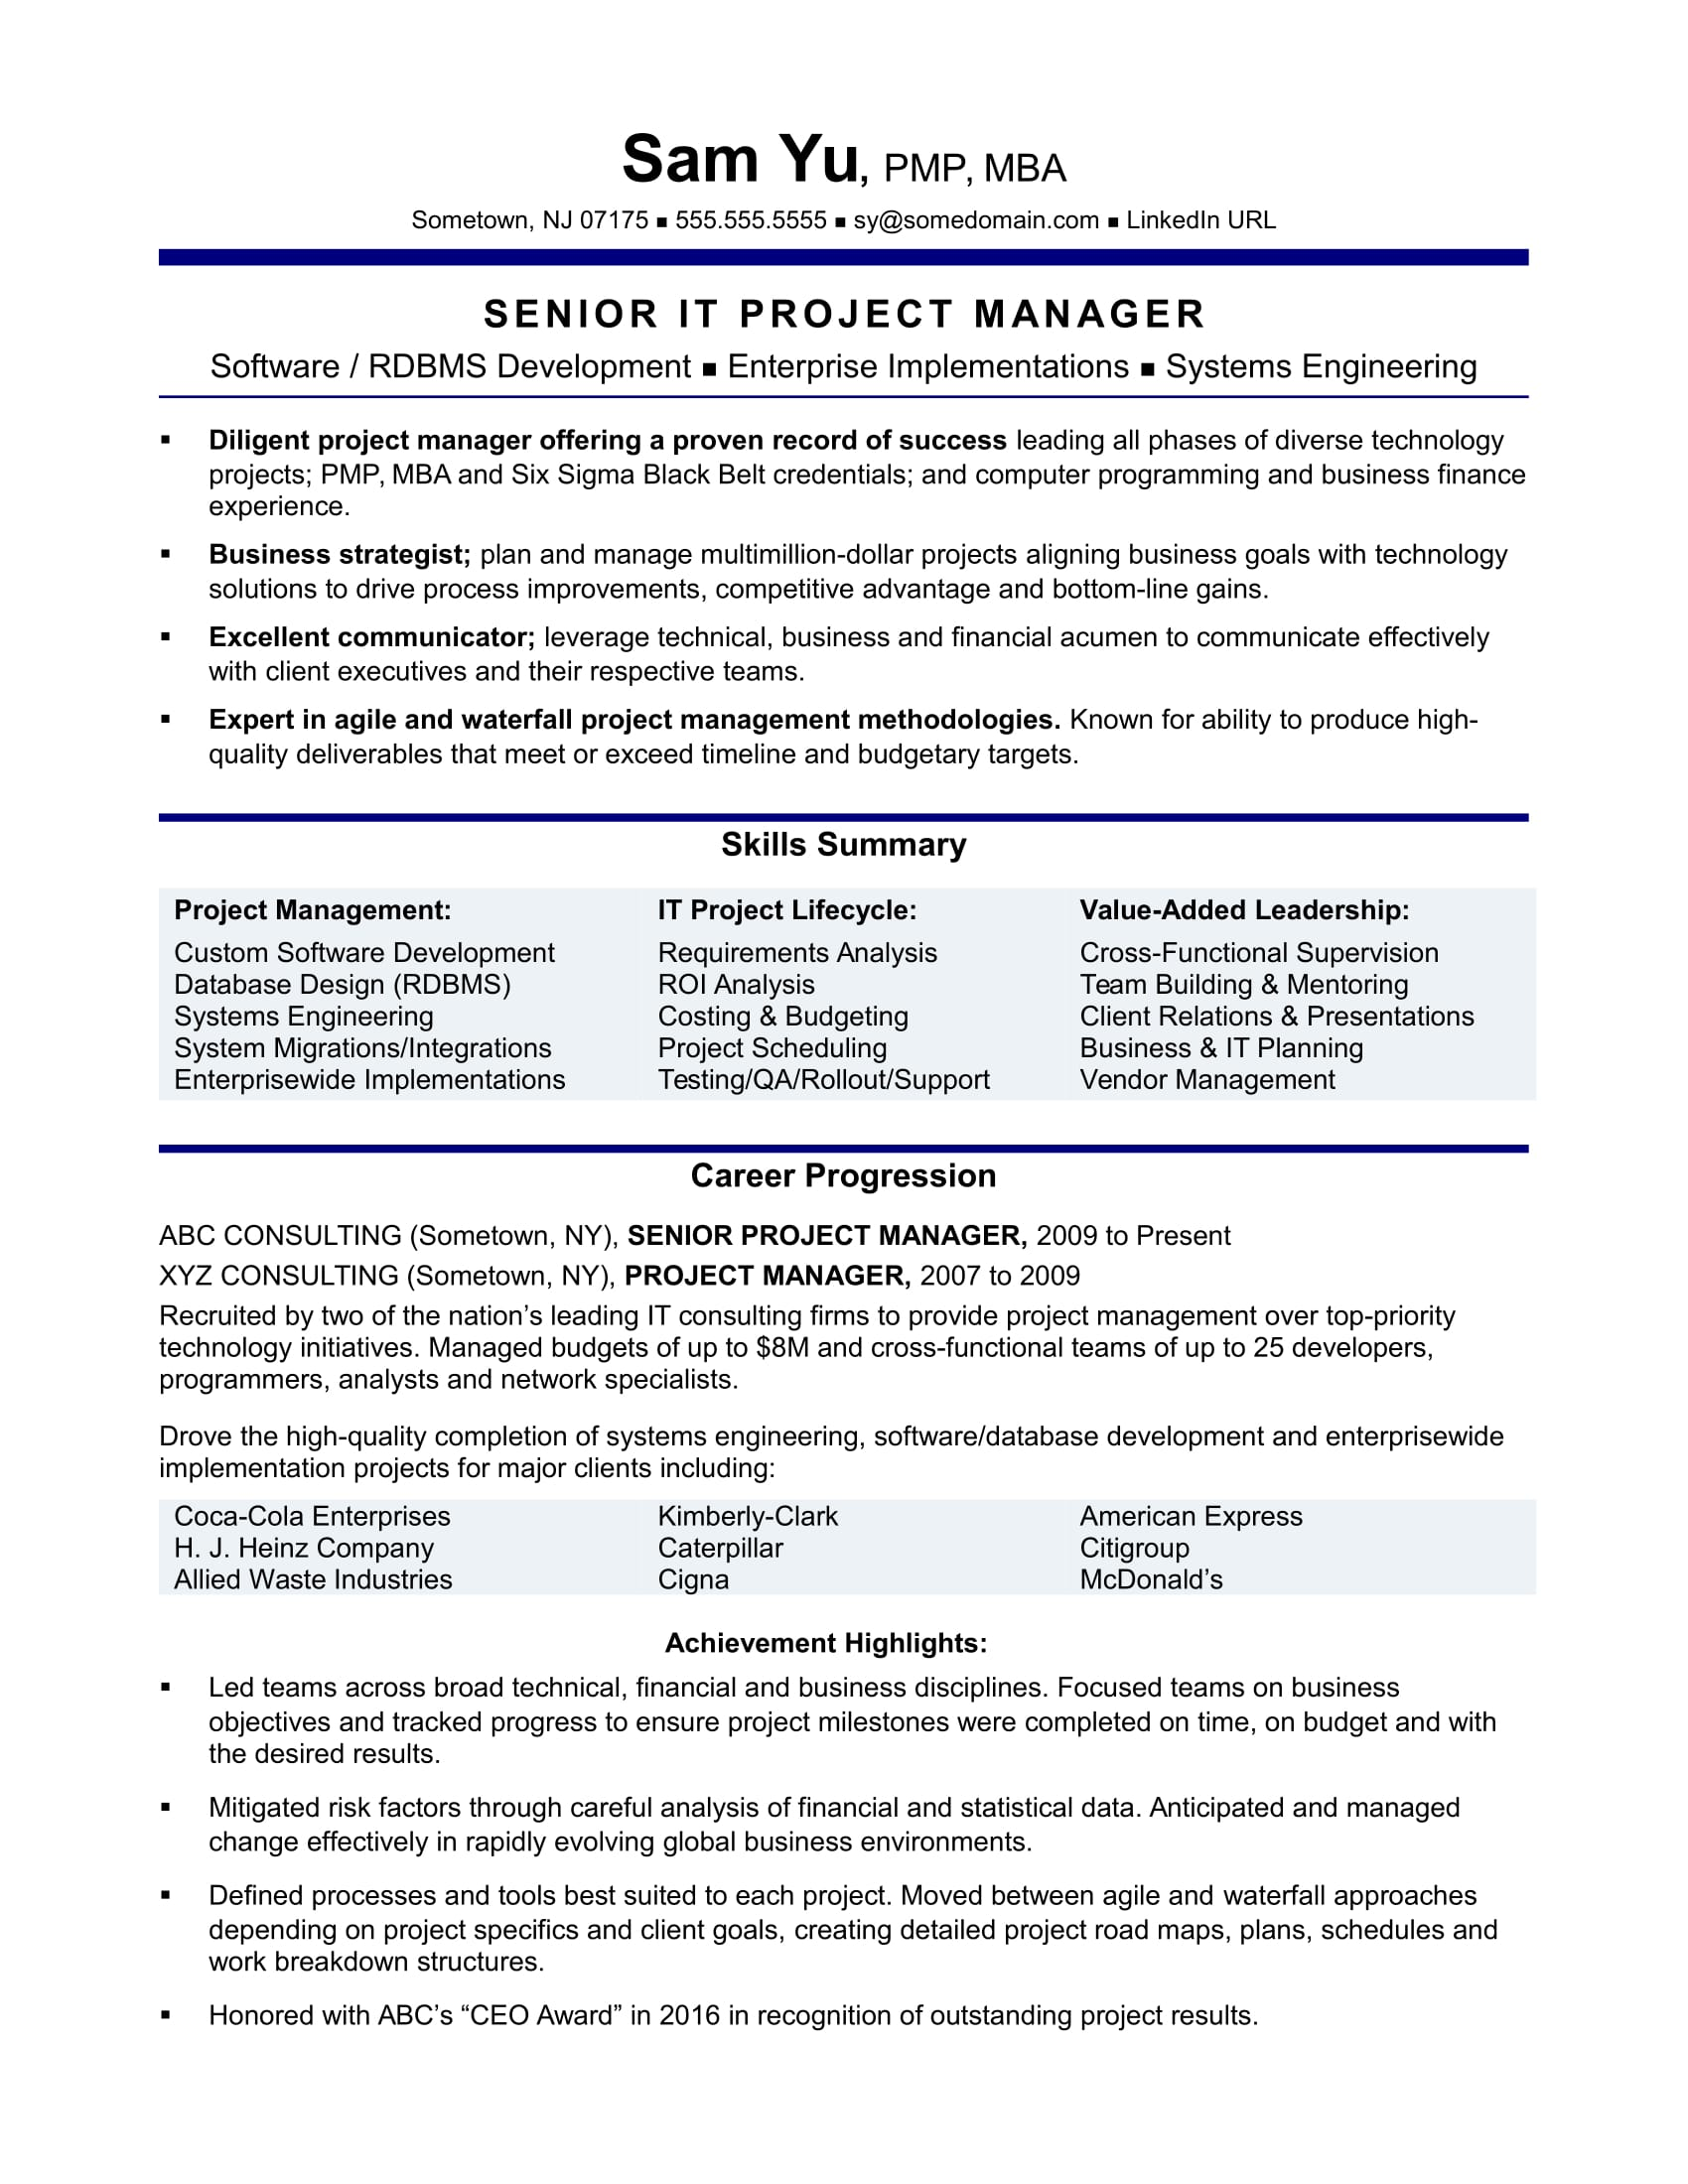 resume Pmp Resume Examples experienced it project manager resume sample monster com sample